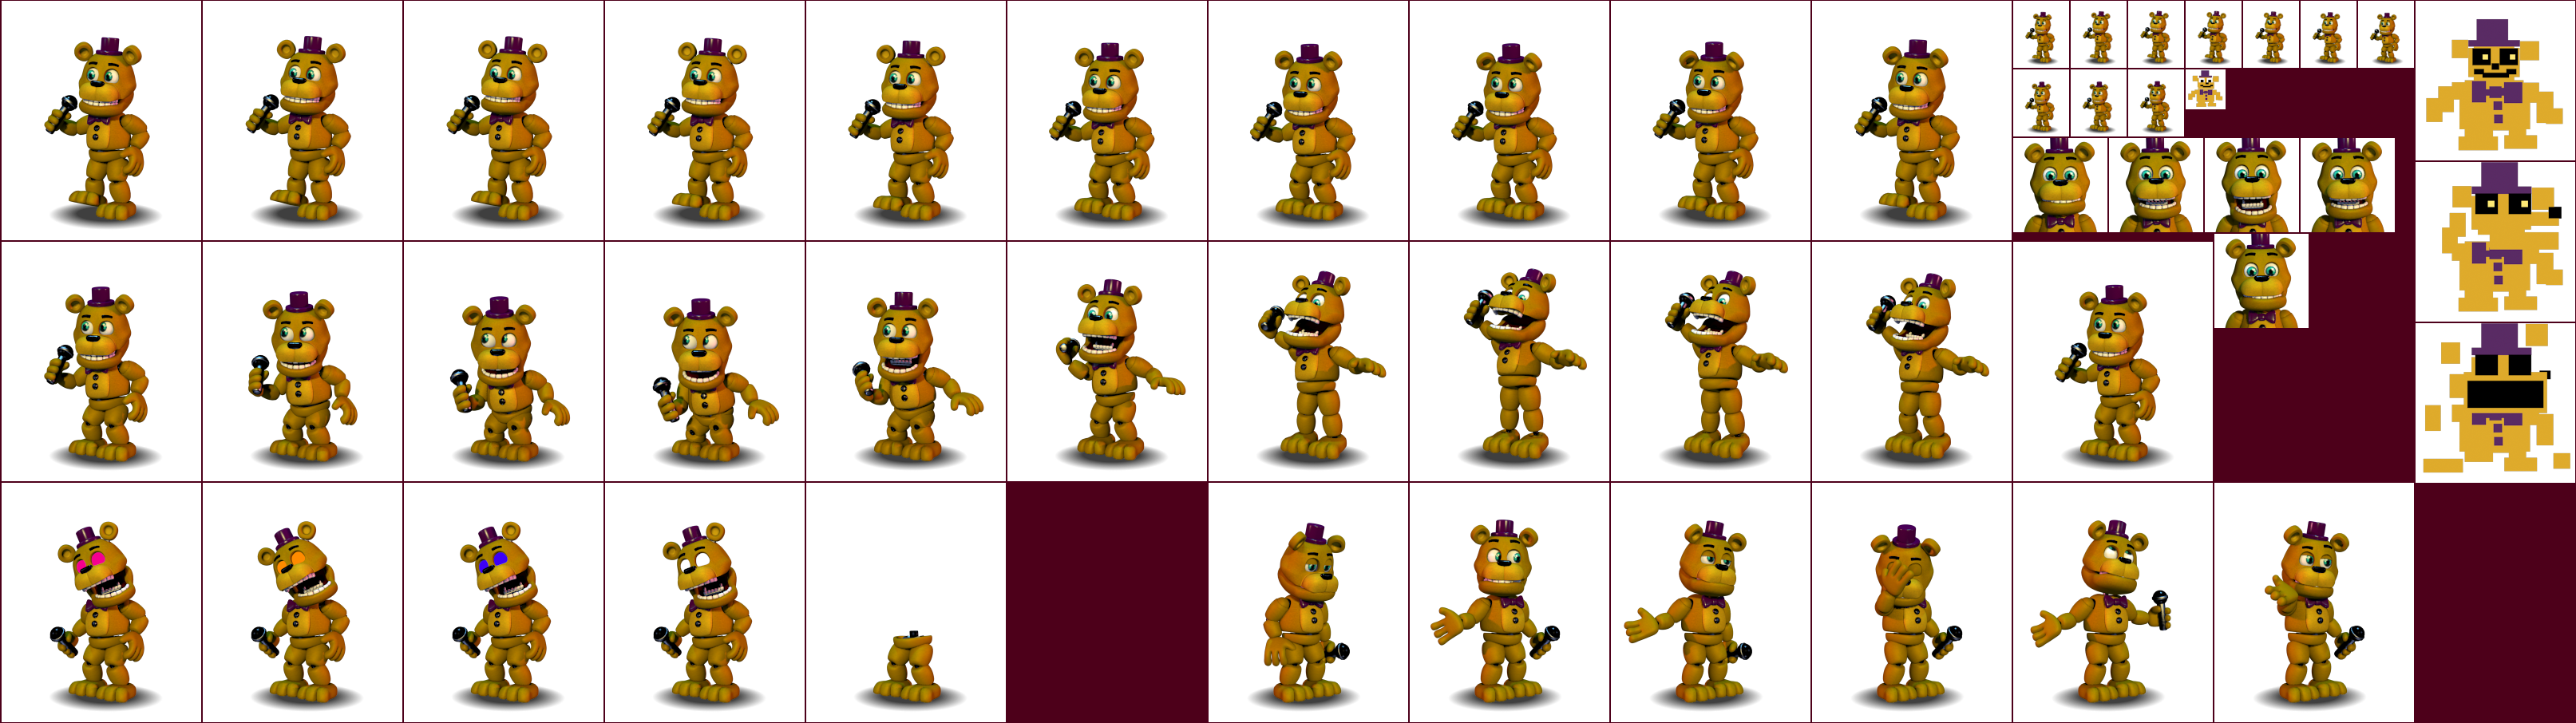 PC / Computer - FNaF World - Fredbear - The Spriters Resource